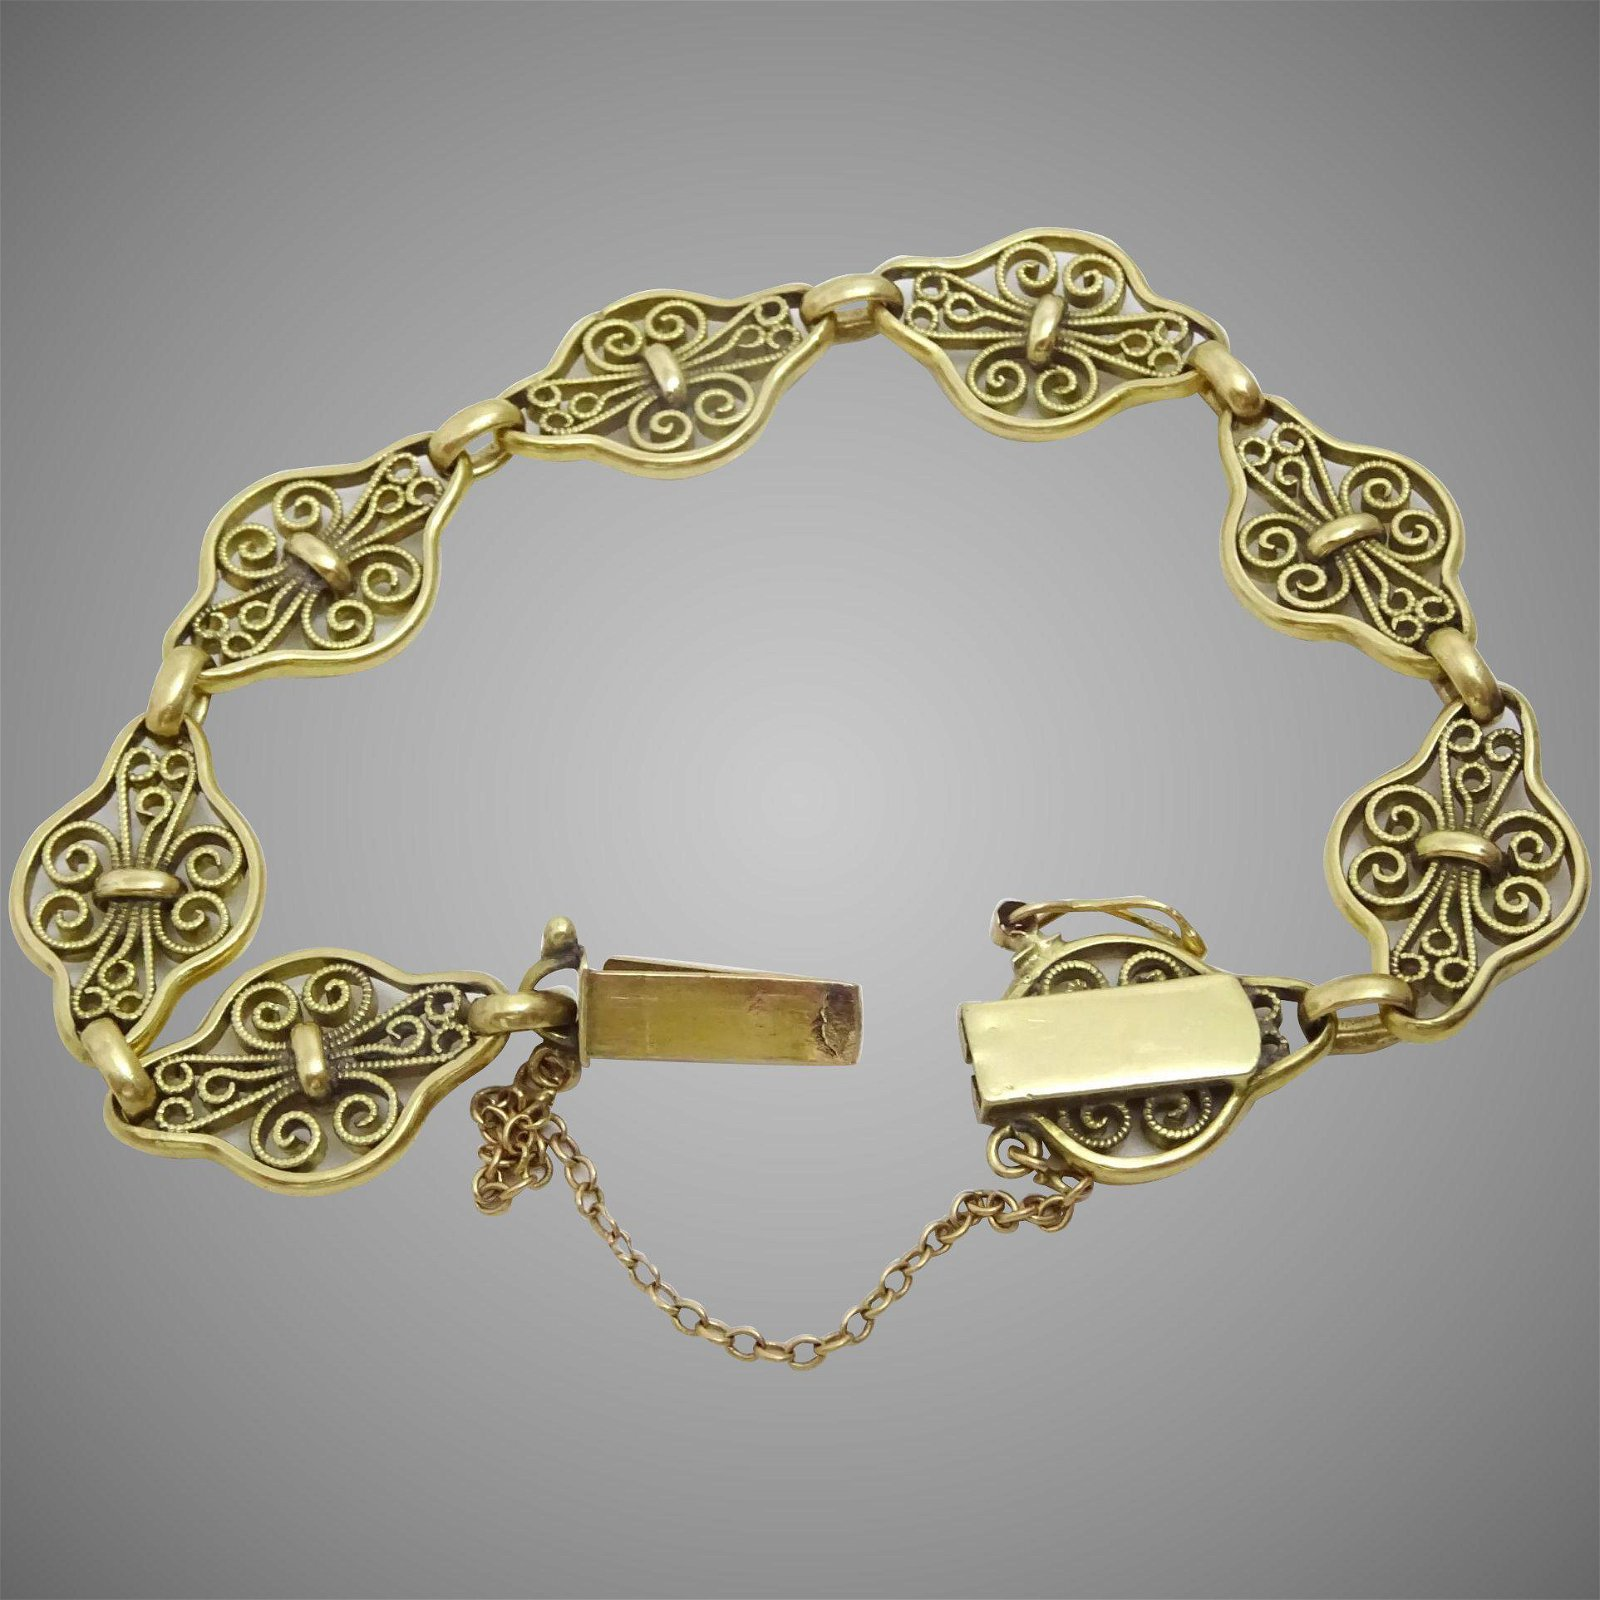 Vintage 18 karat Gold French Filigree Bracelet